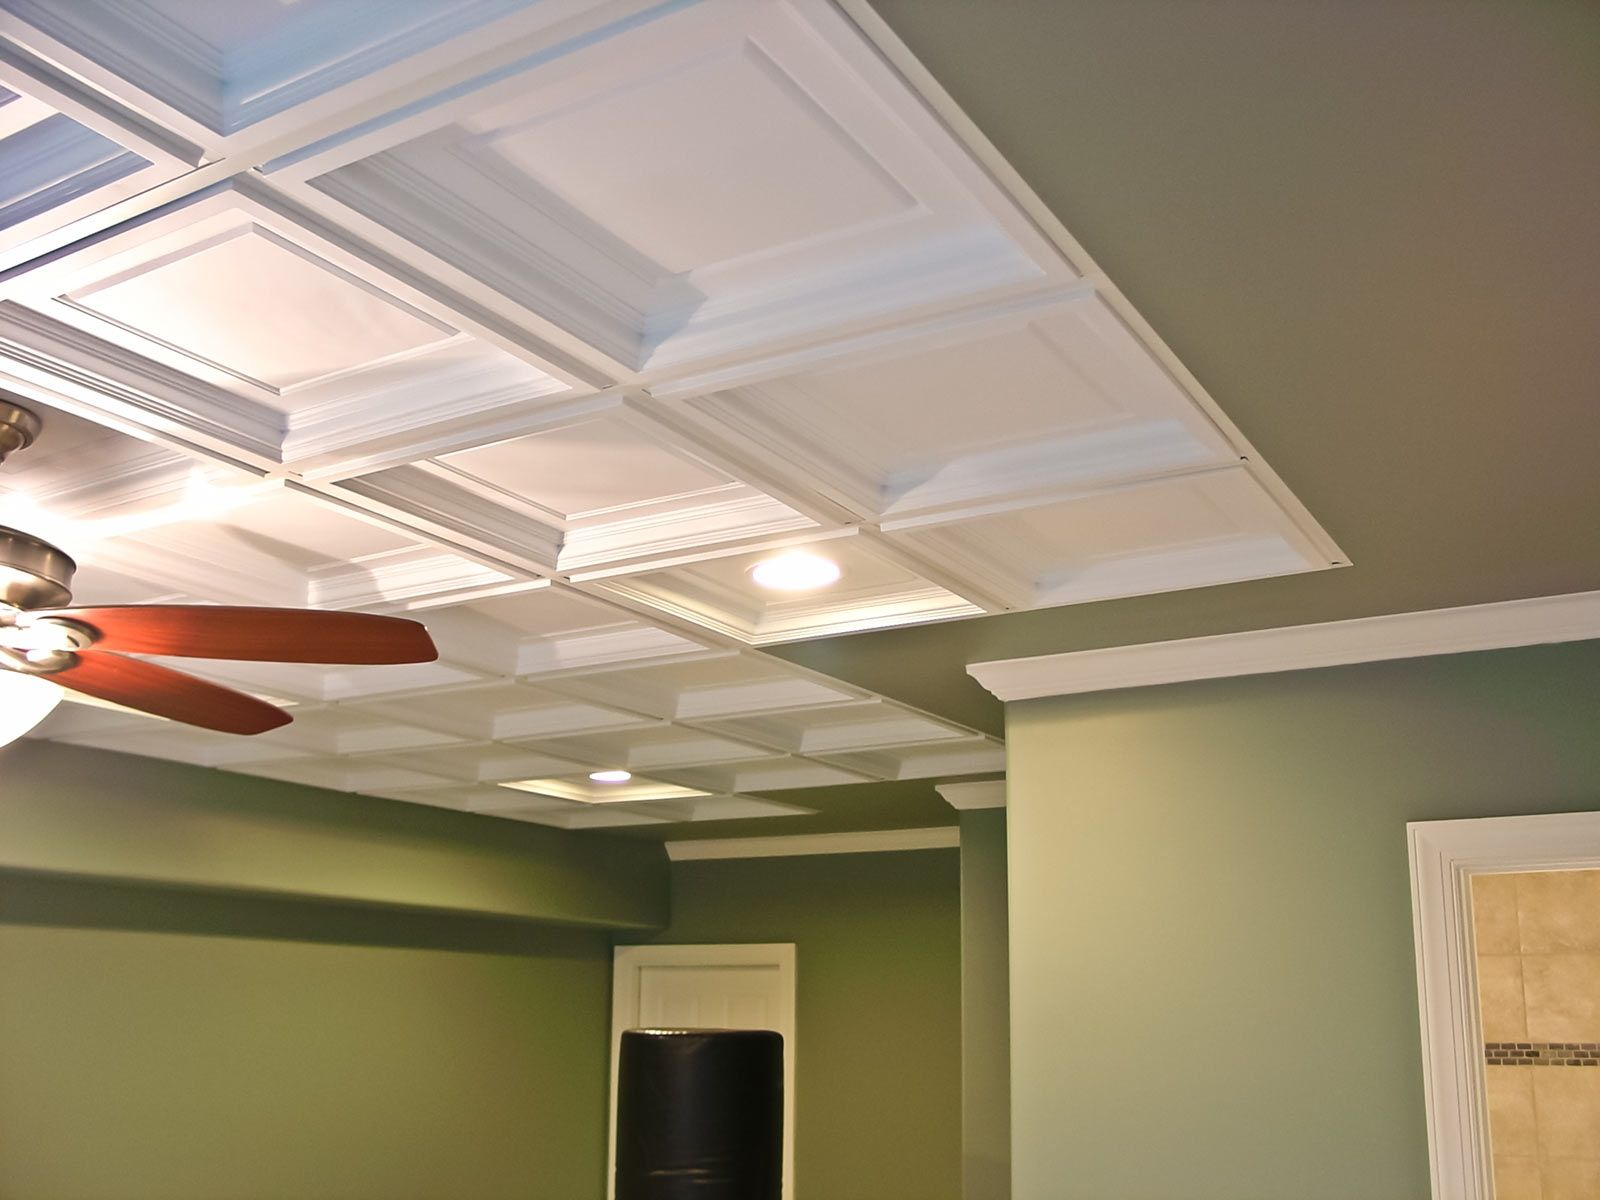 Decorative drop ceiling tiles 24 httpcreativechairsandtables acoustic ceiling tiles dailygadgetfo Image collections